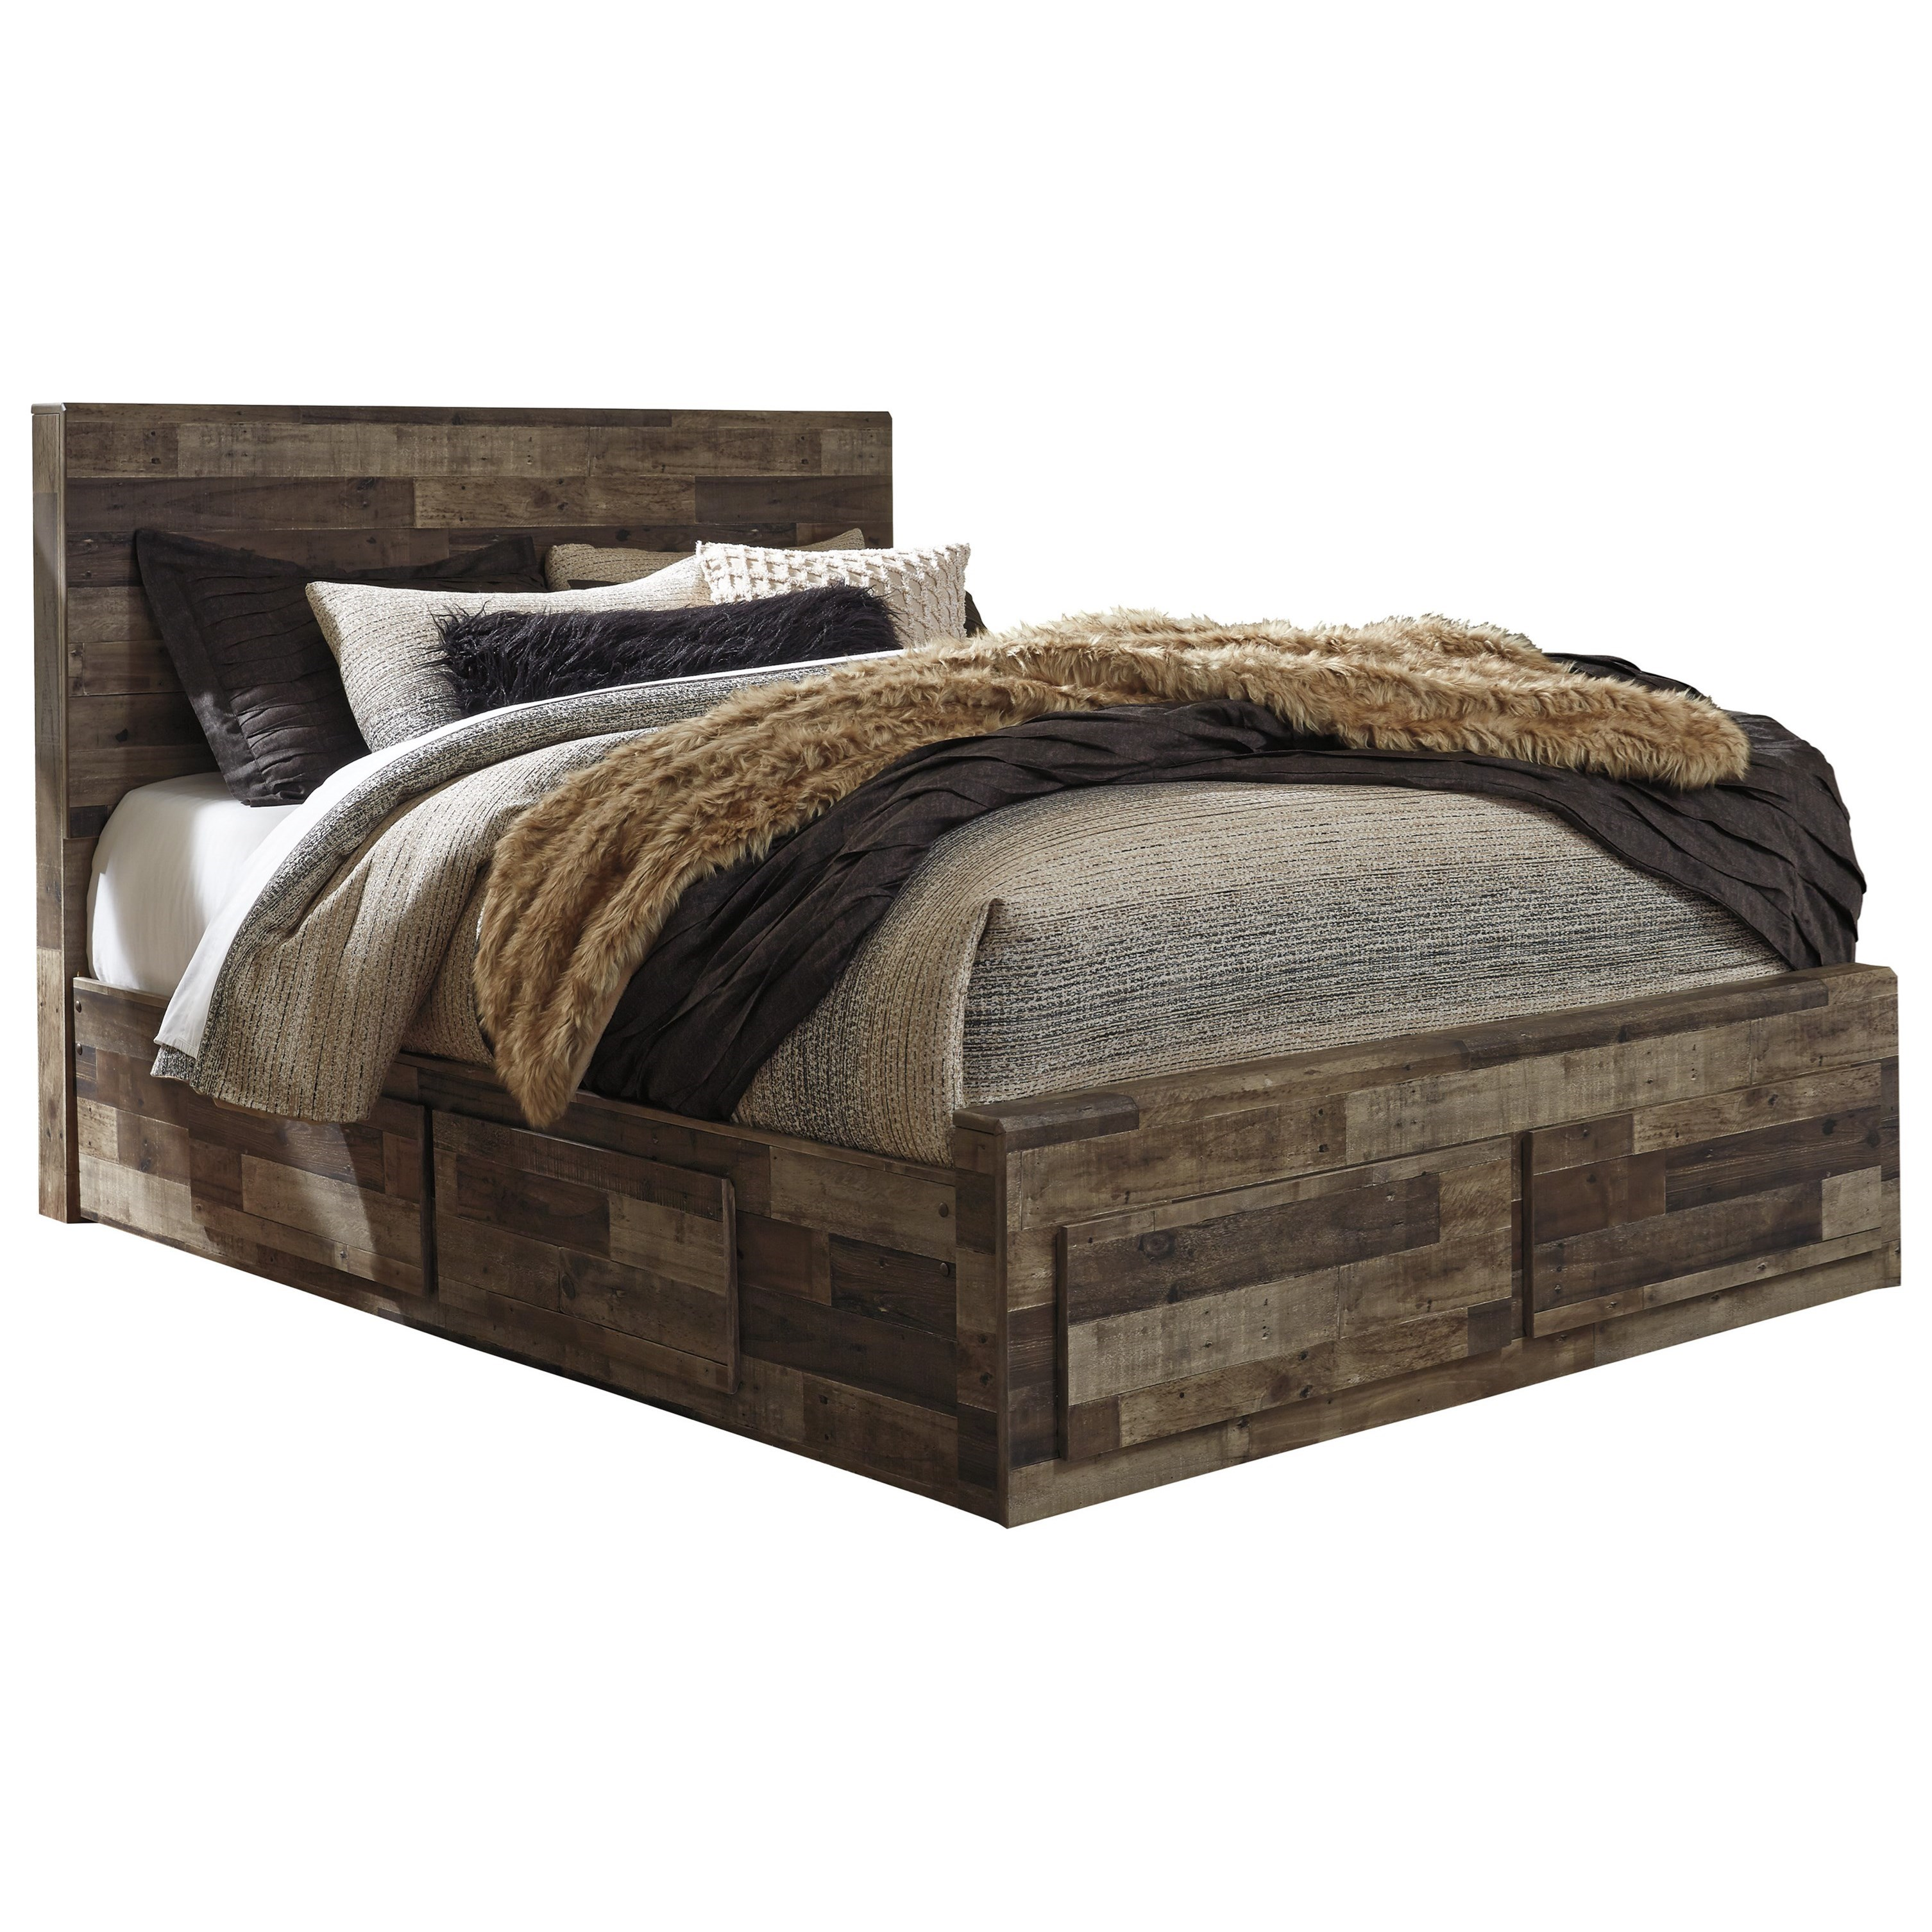 Ashley Furniture Benchcraft Derekson Rustic Modern Queen Storage Bed With 6 Drawers Del Sol Furniture Platform Beds Low Profile Beds